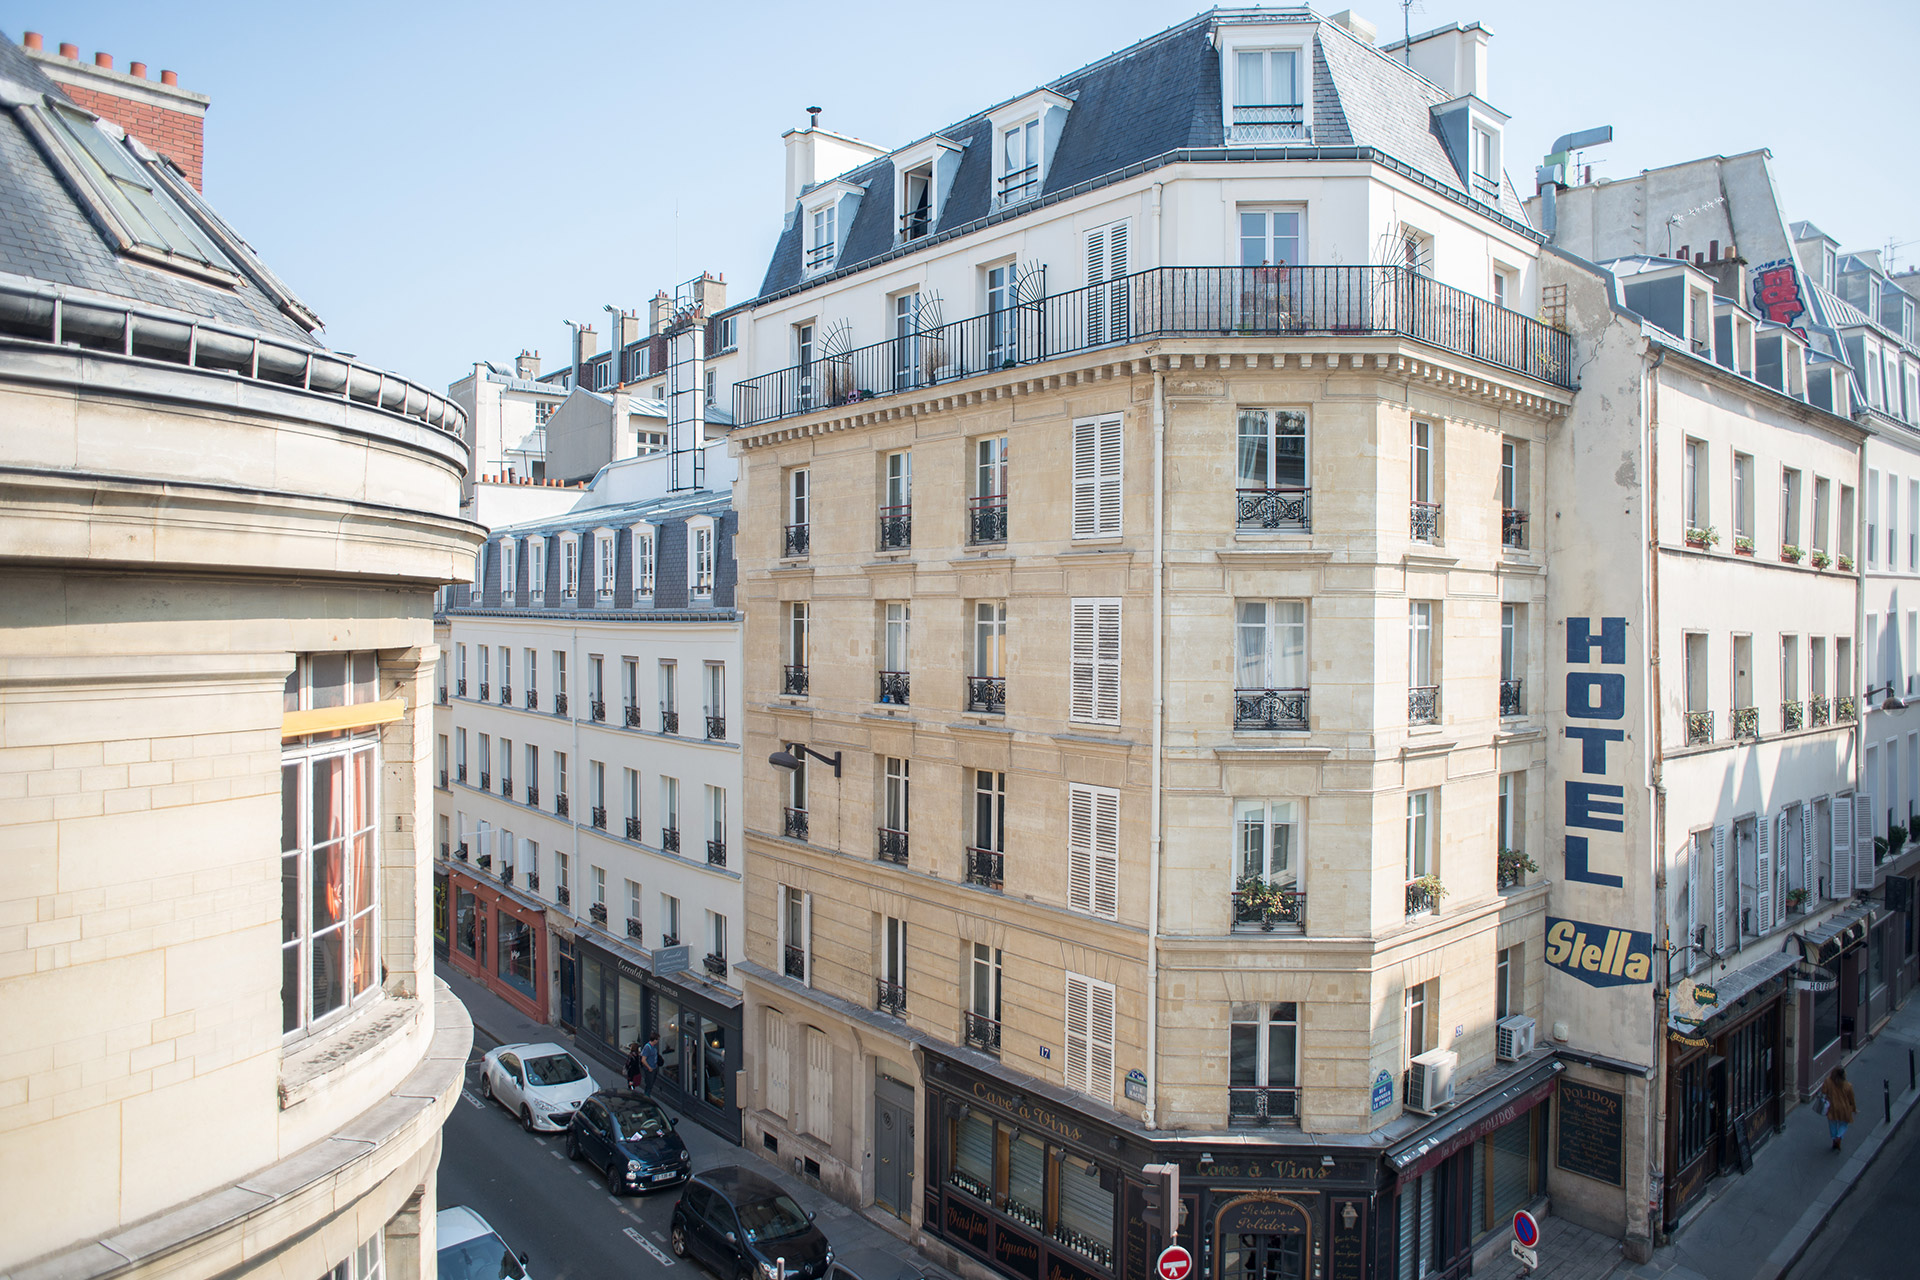 6th arrondisement of Paris near the Forez vacation rental offered by Paris Perfect